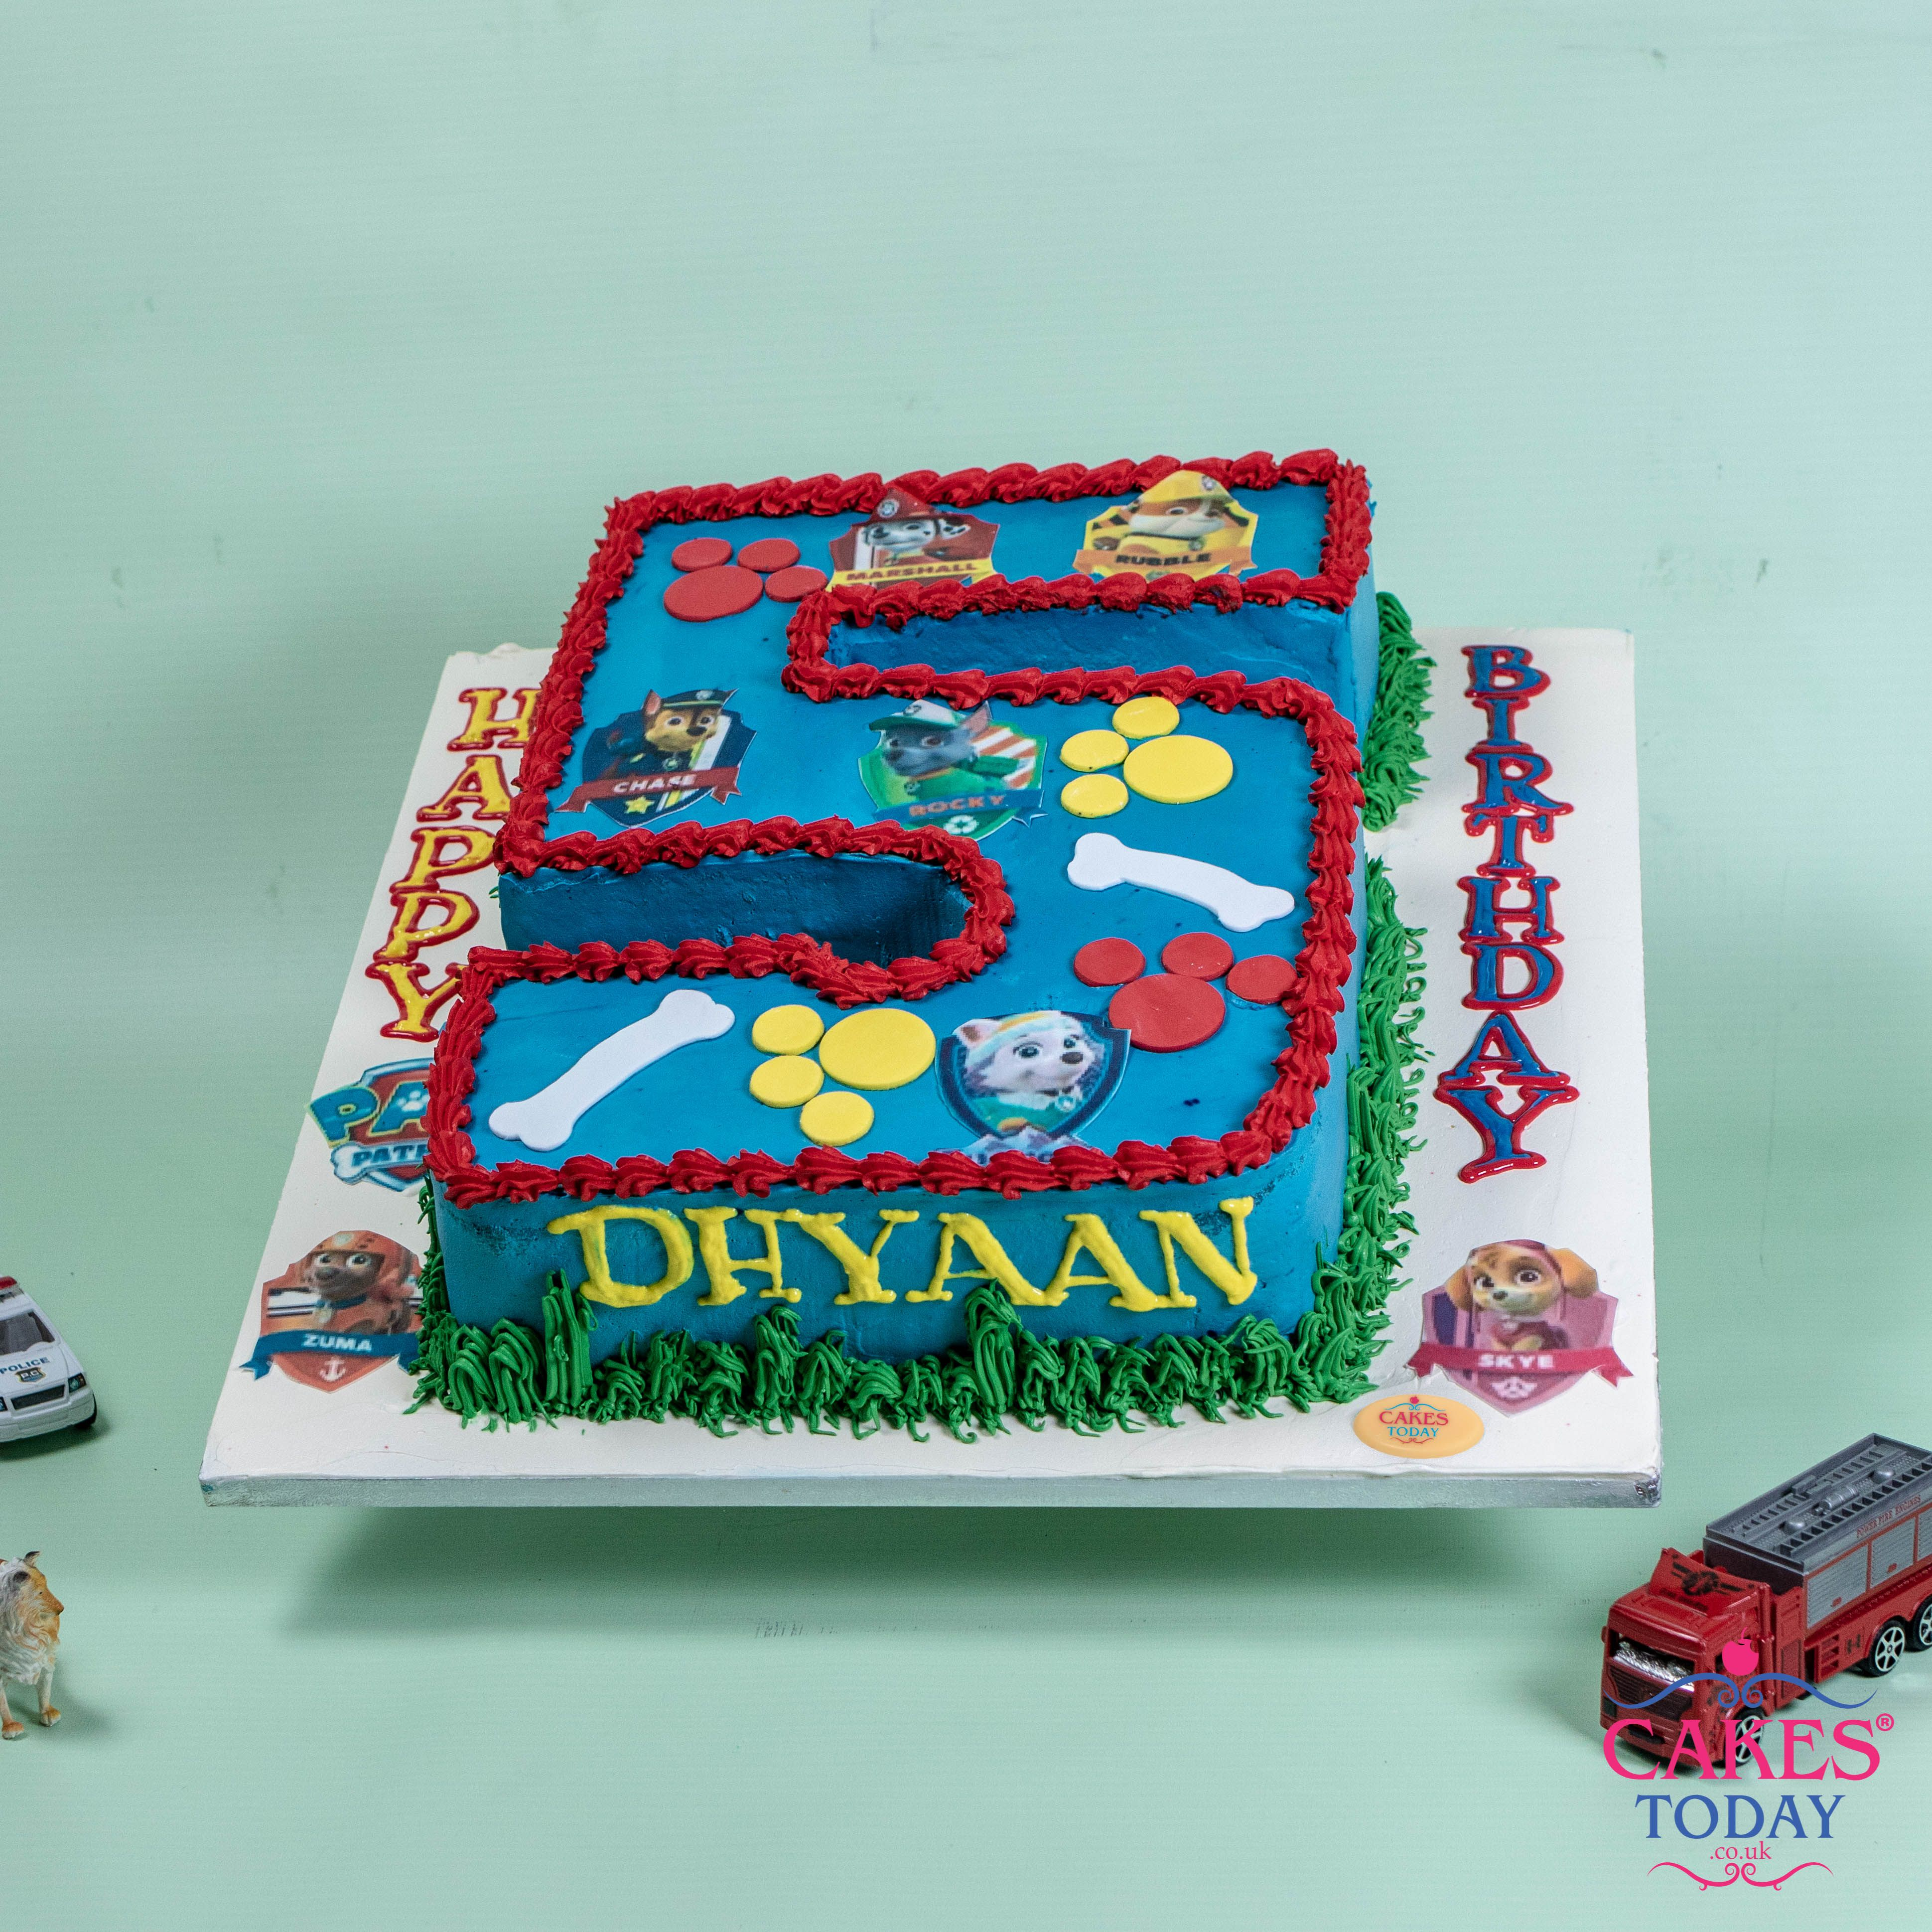 Number 5 Shaped Cake For Dhyaan Designed In The Theme Of His Favourite Cartoon TV Show Paw Patrol NumberCake CakesToday